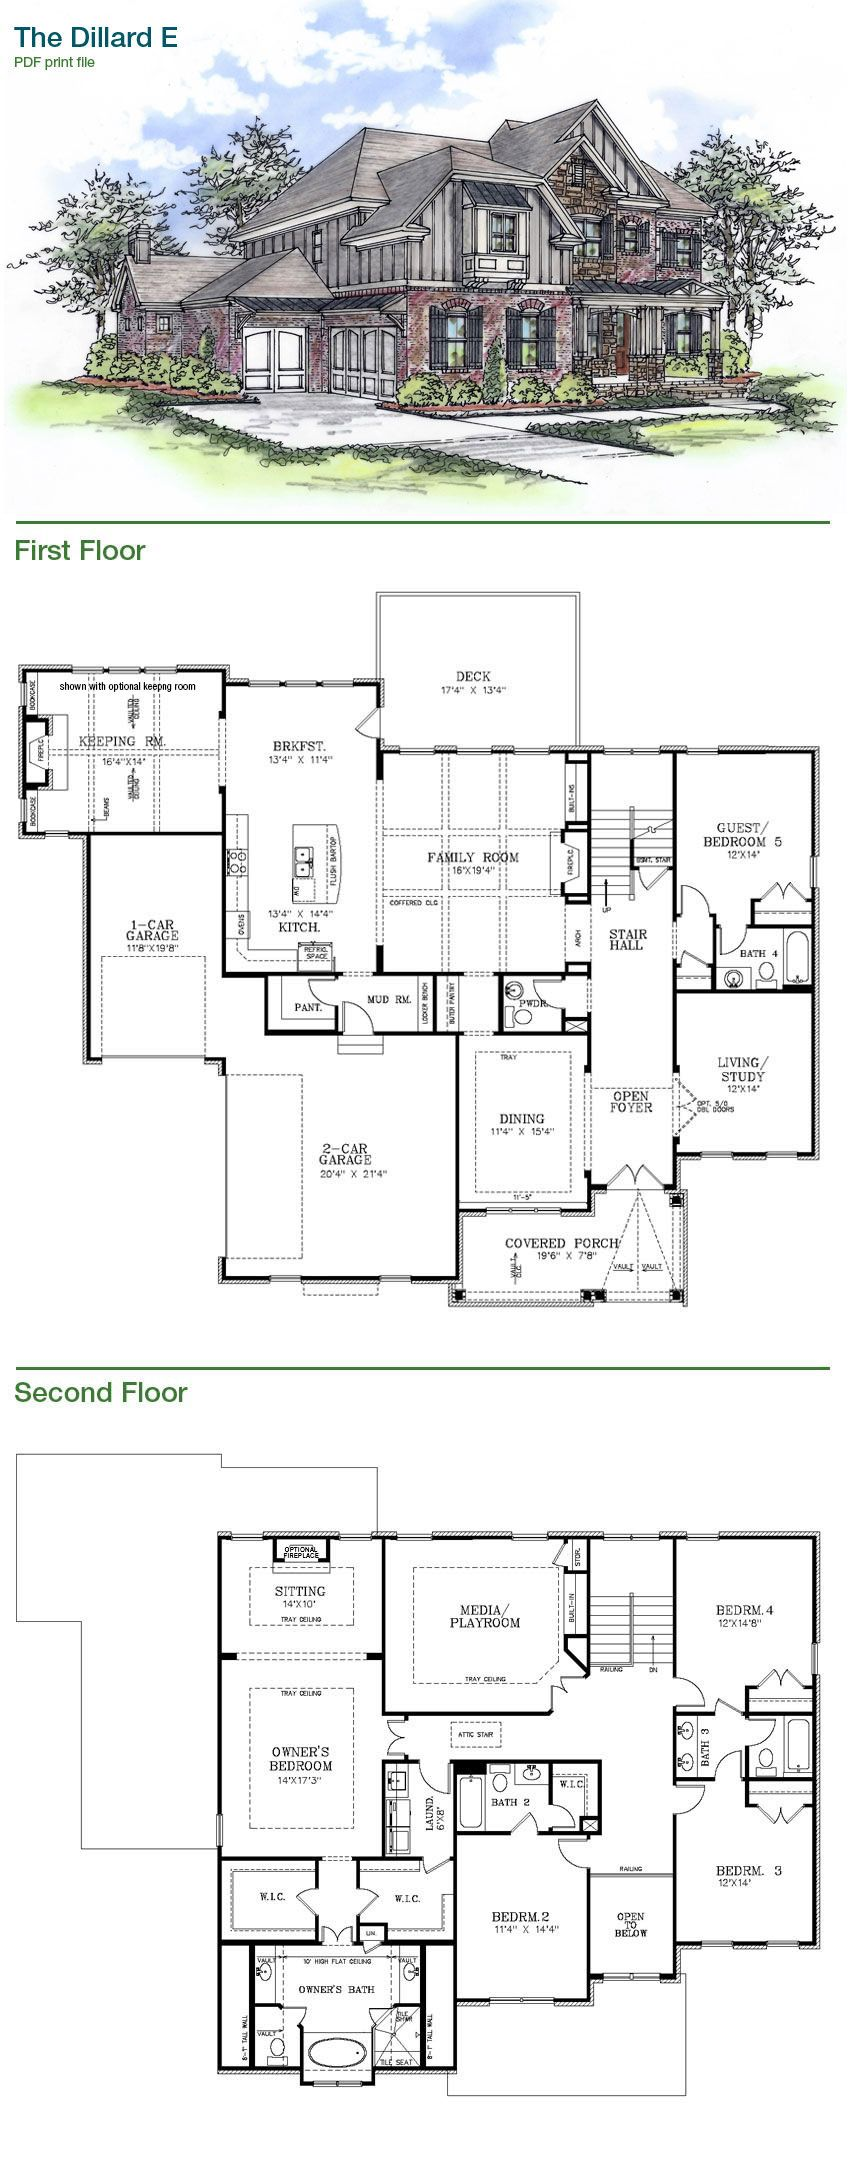 House Plans Luxury Homes New Construction New Home Construction Project Construction Bercher Home New Home Construction House Plans Home Construction